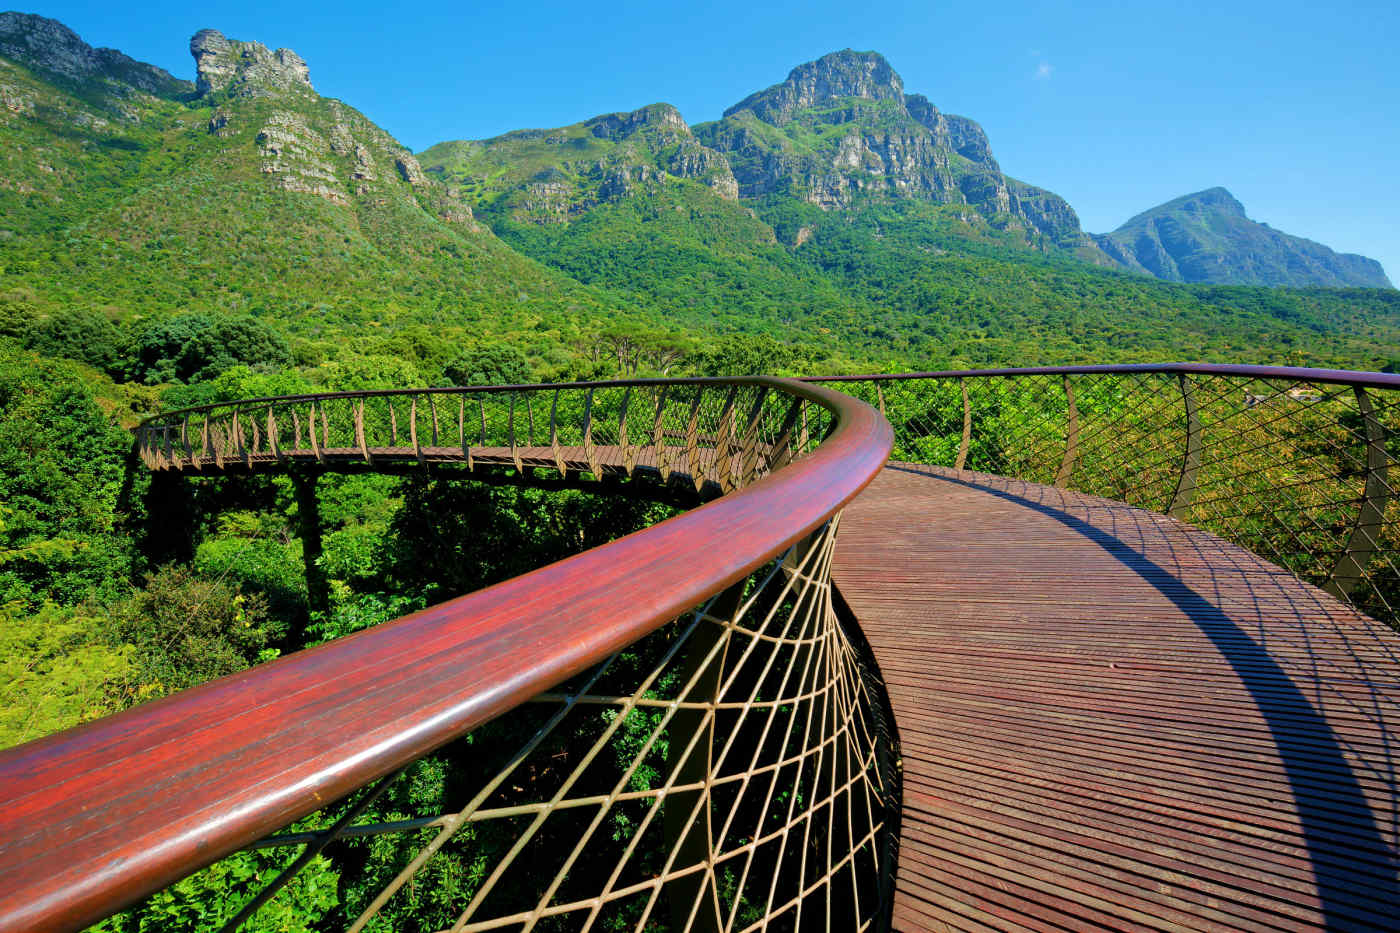 Kirstenbosch Botanical Garden in Cape Town, South Africa